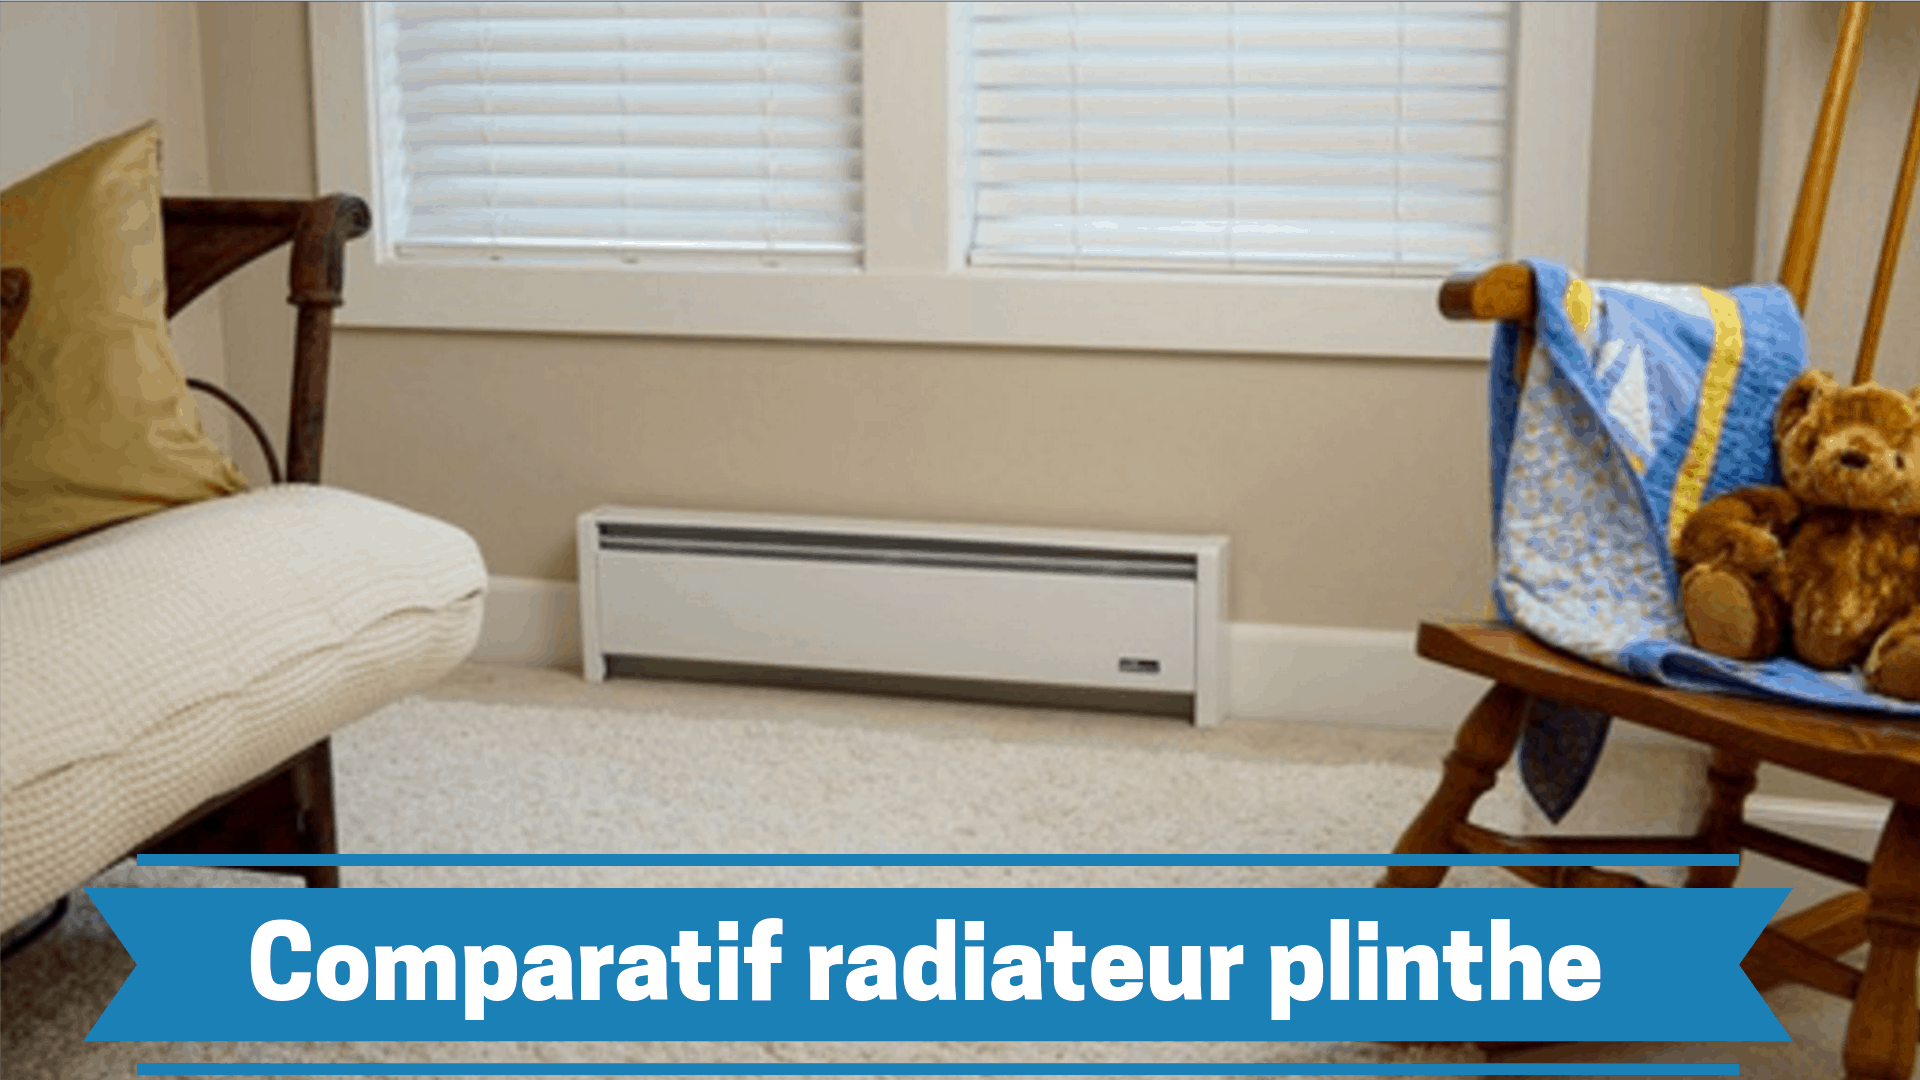 meilleur radiateur plinthe avis prix comparatif. Black Bedroom Furniture Sets. Home Design Ideas